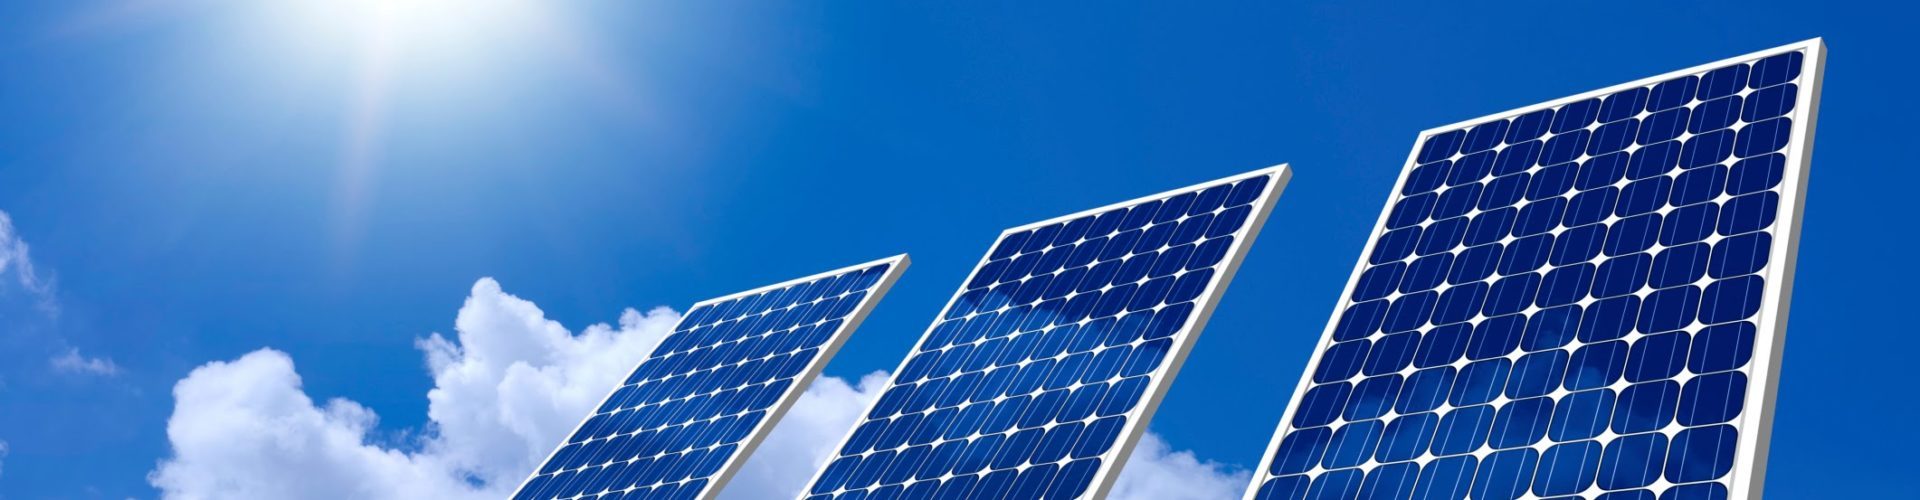 5 new and promising alternative energy sources